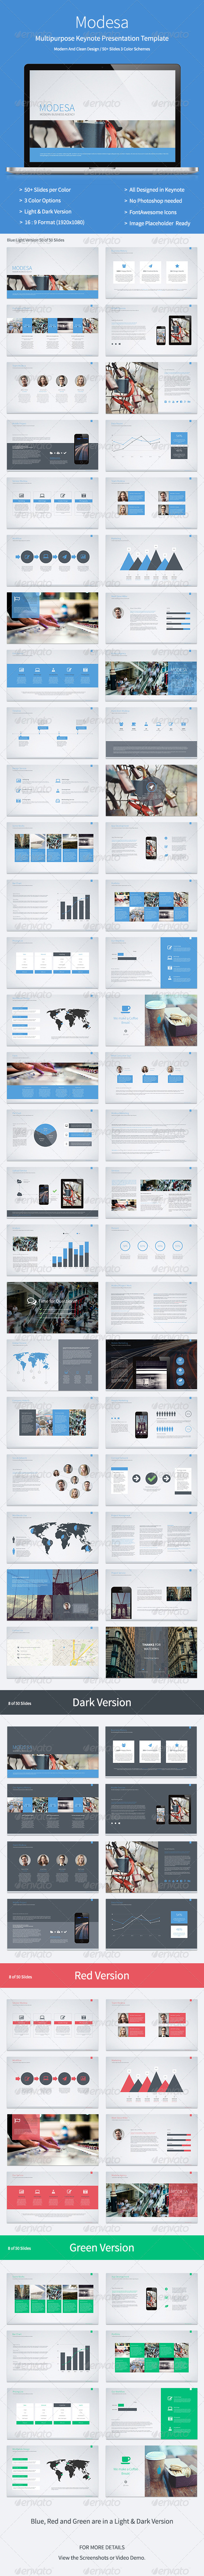 GraphicRiver Modesa Multipurpose Keynote Template 8017338